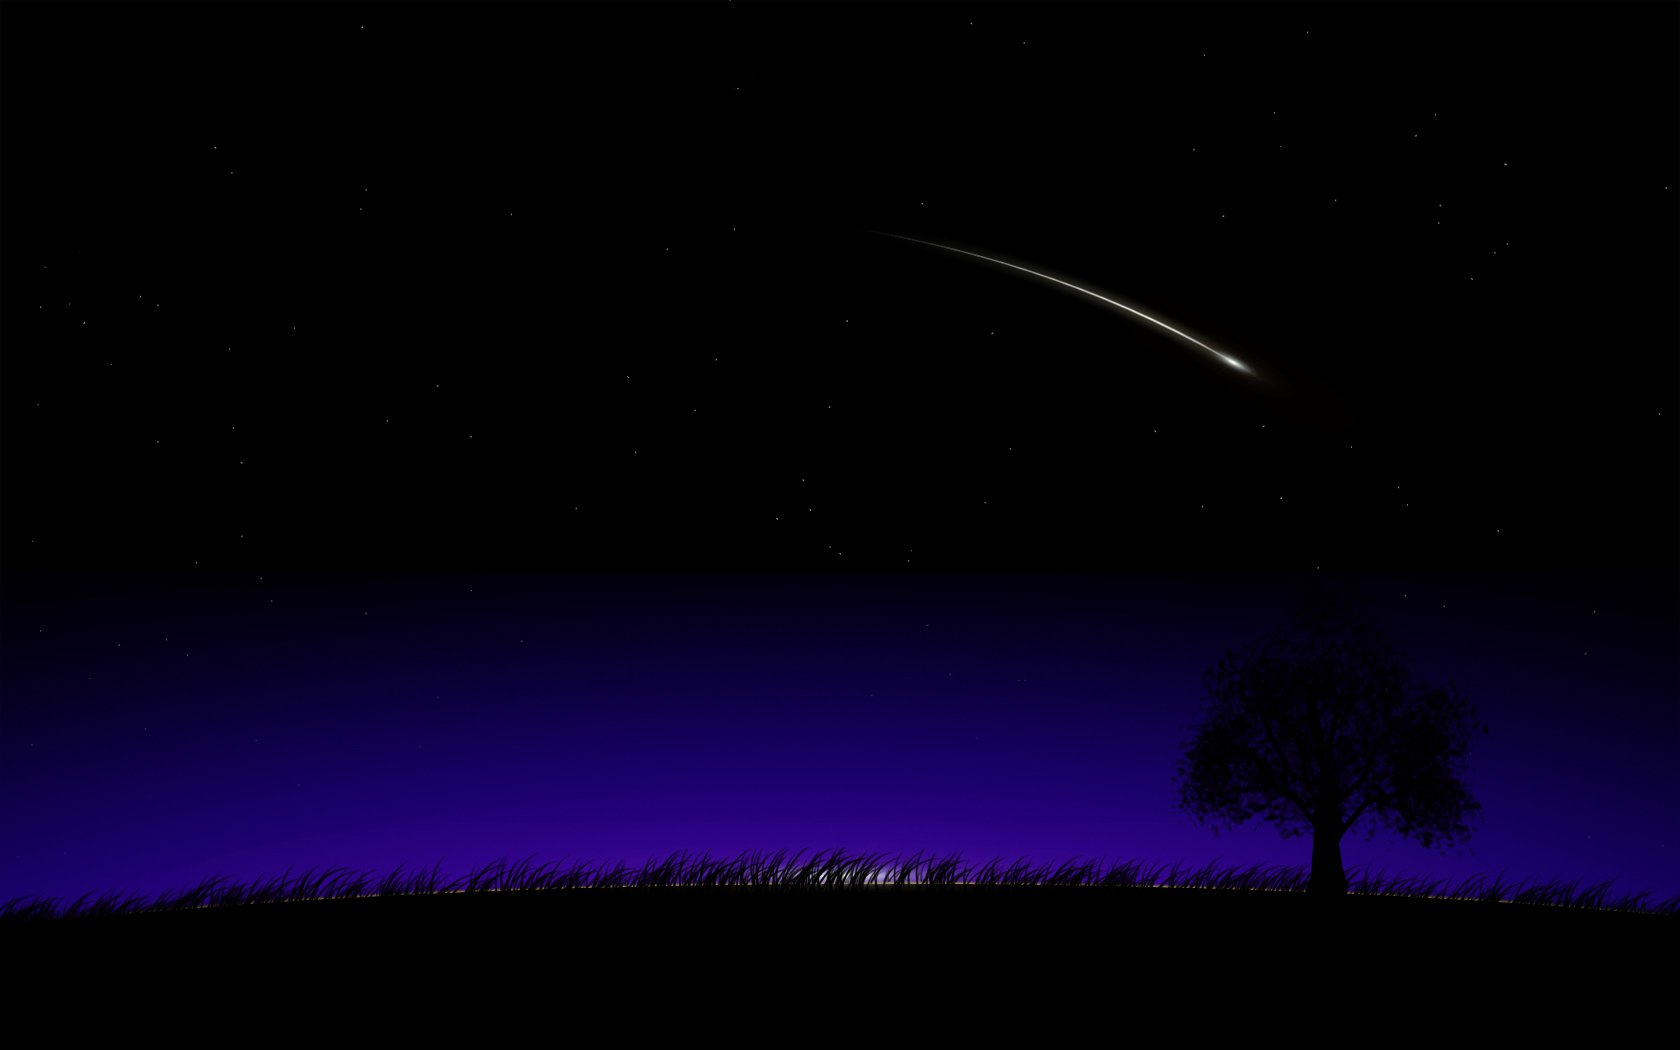 Night shooting star wallpaper 1680x1050 324328 1680x1050